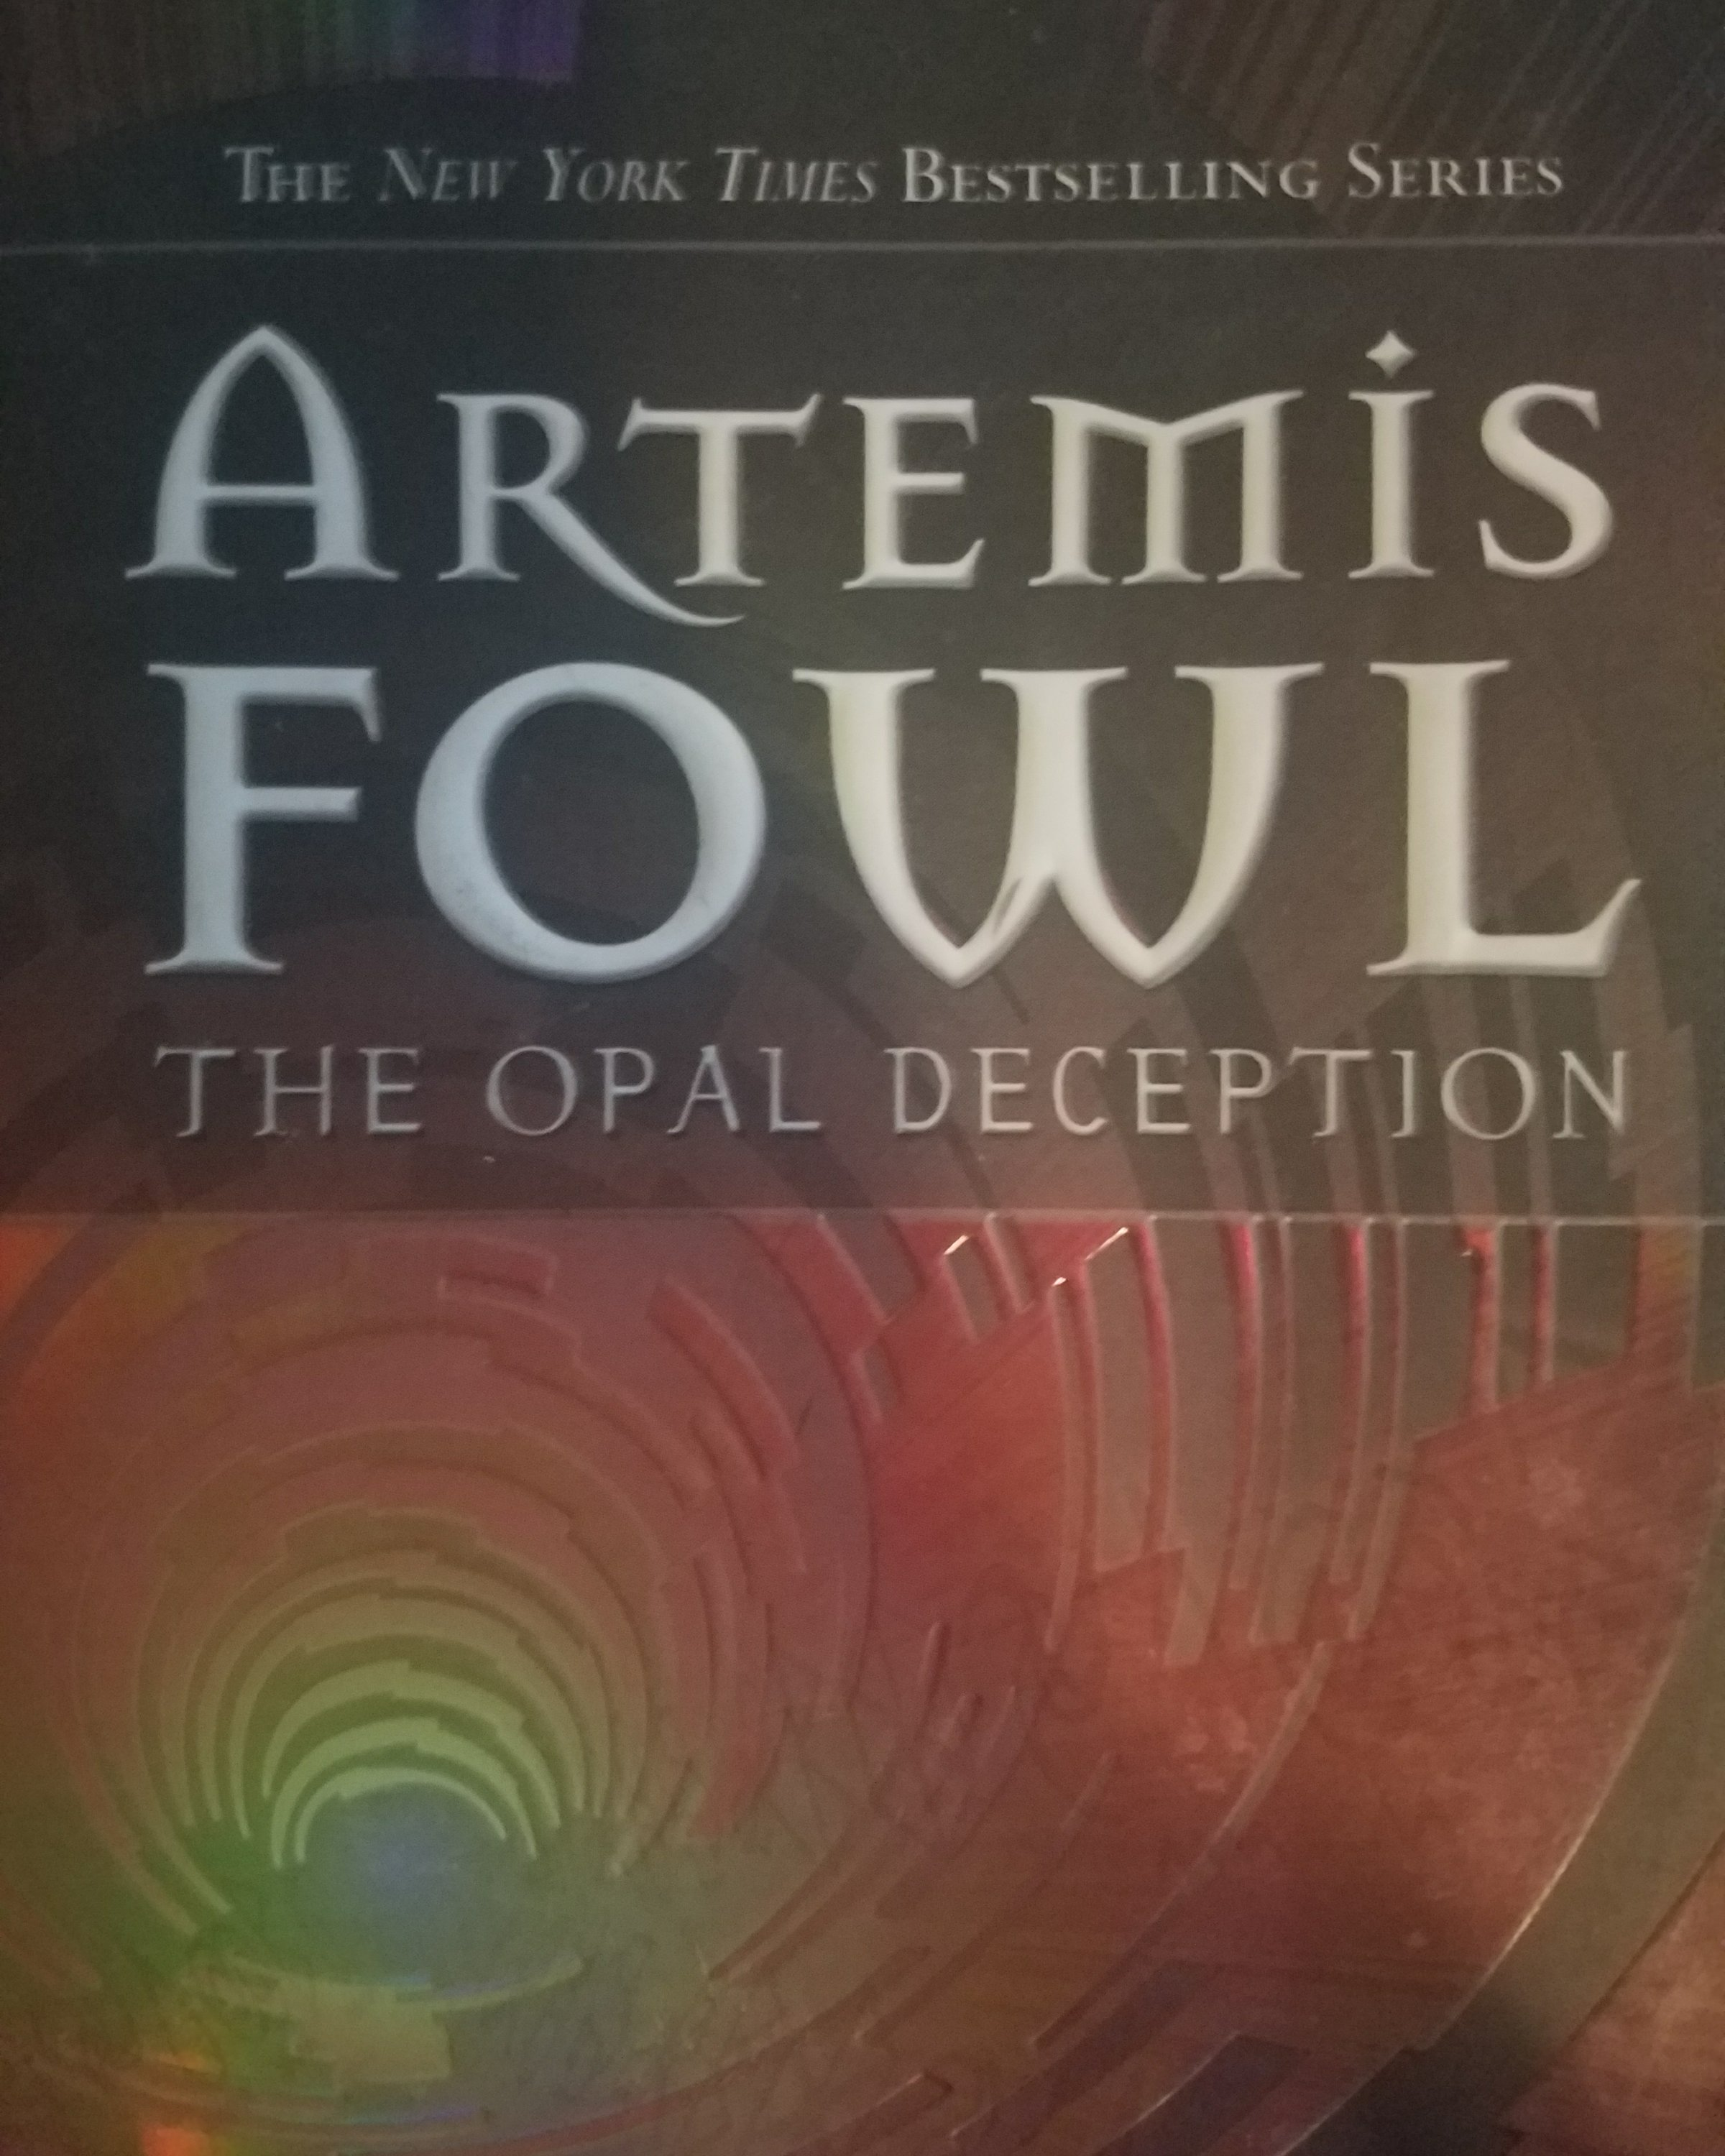 theme of artemis fowl the opal